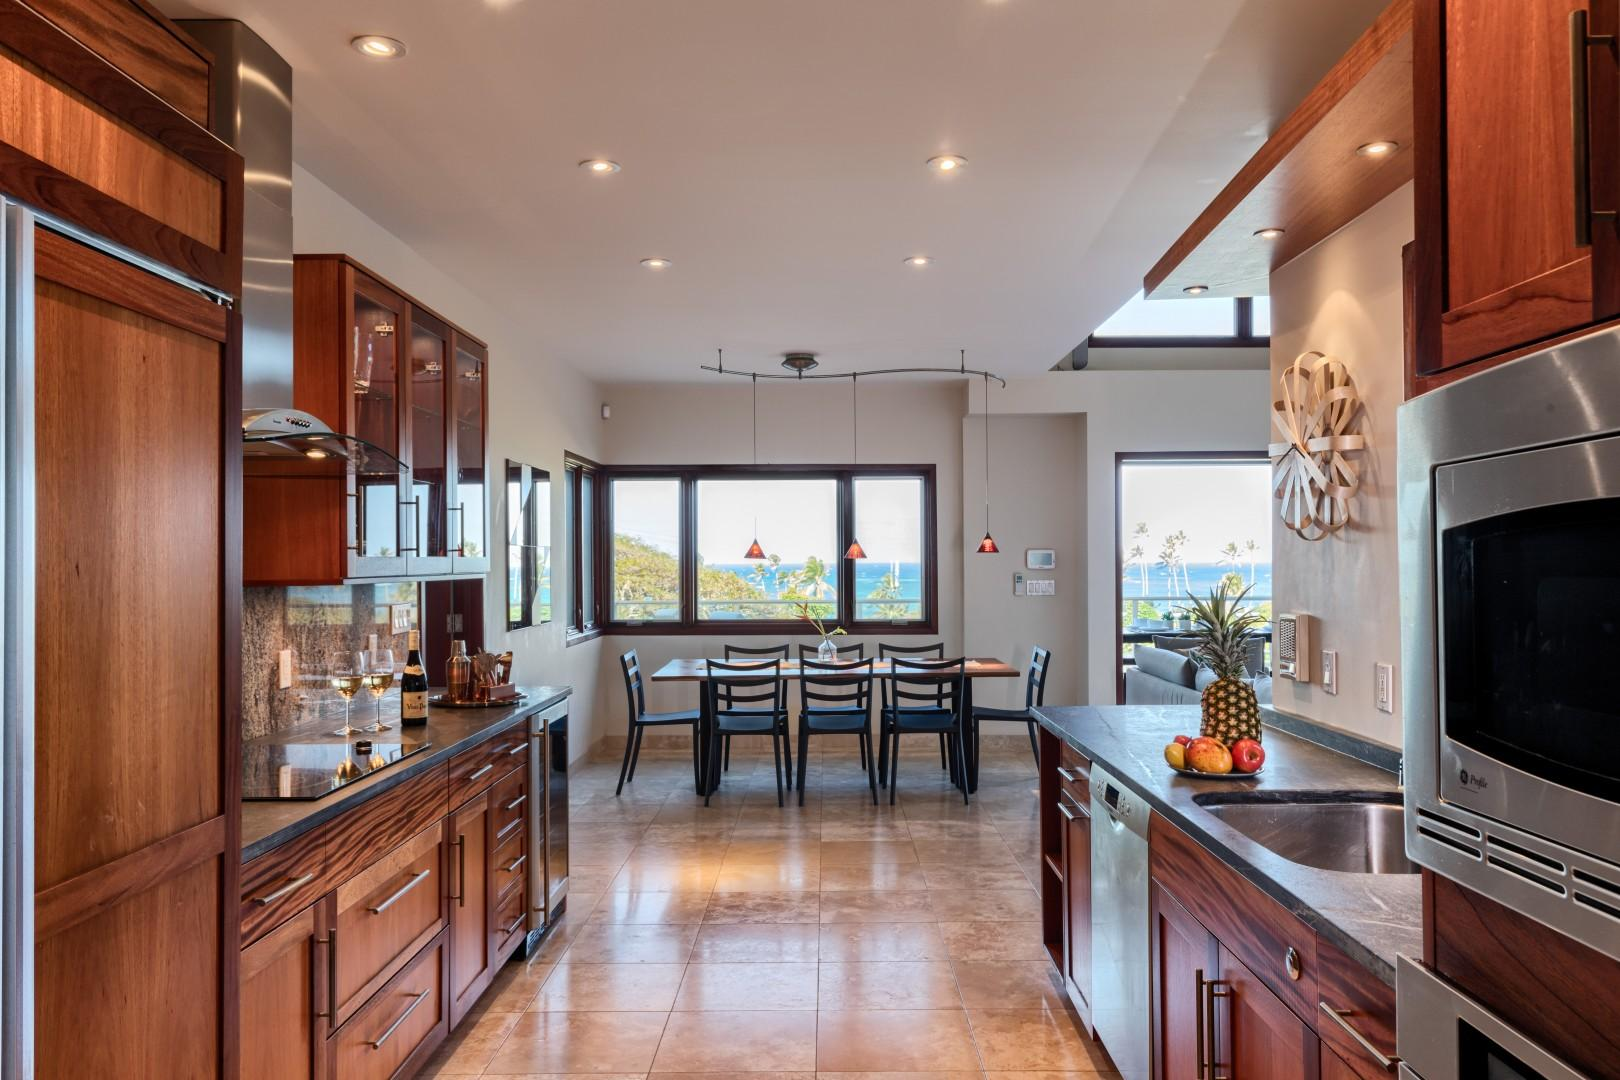 The second floor kitchen comes equipped with a beautiful ocean view!